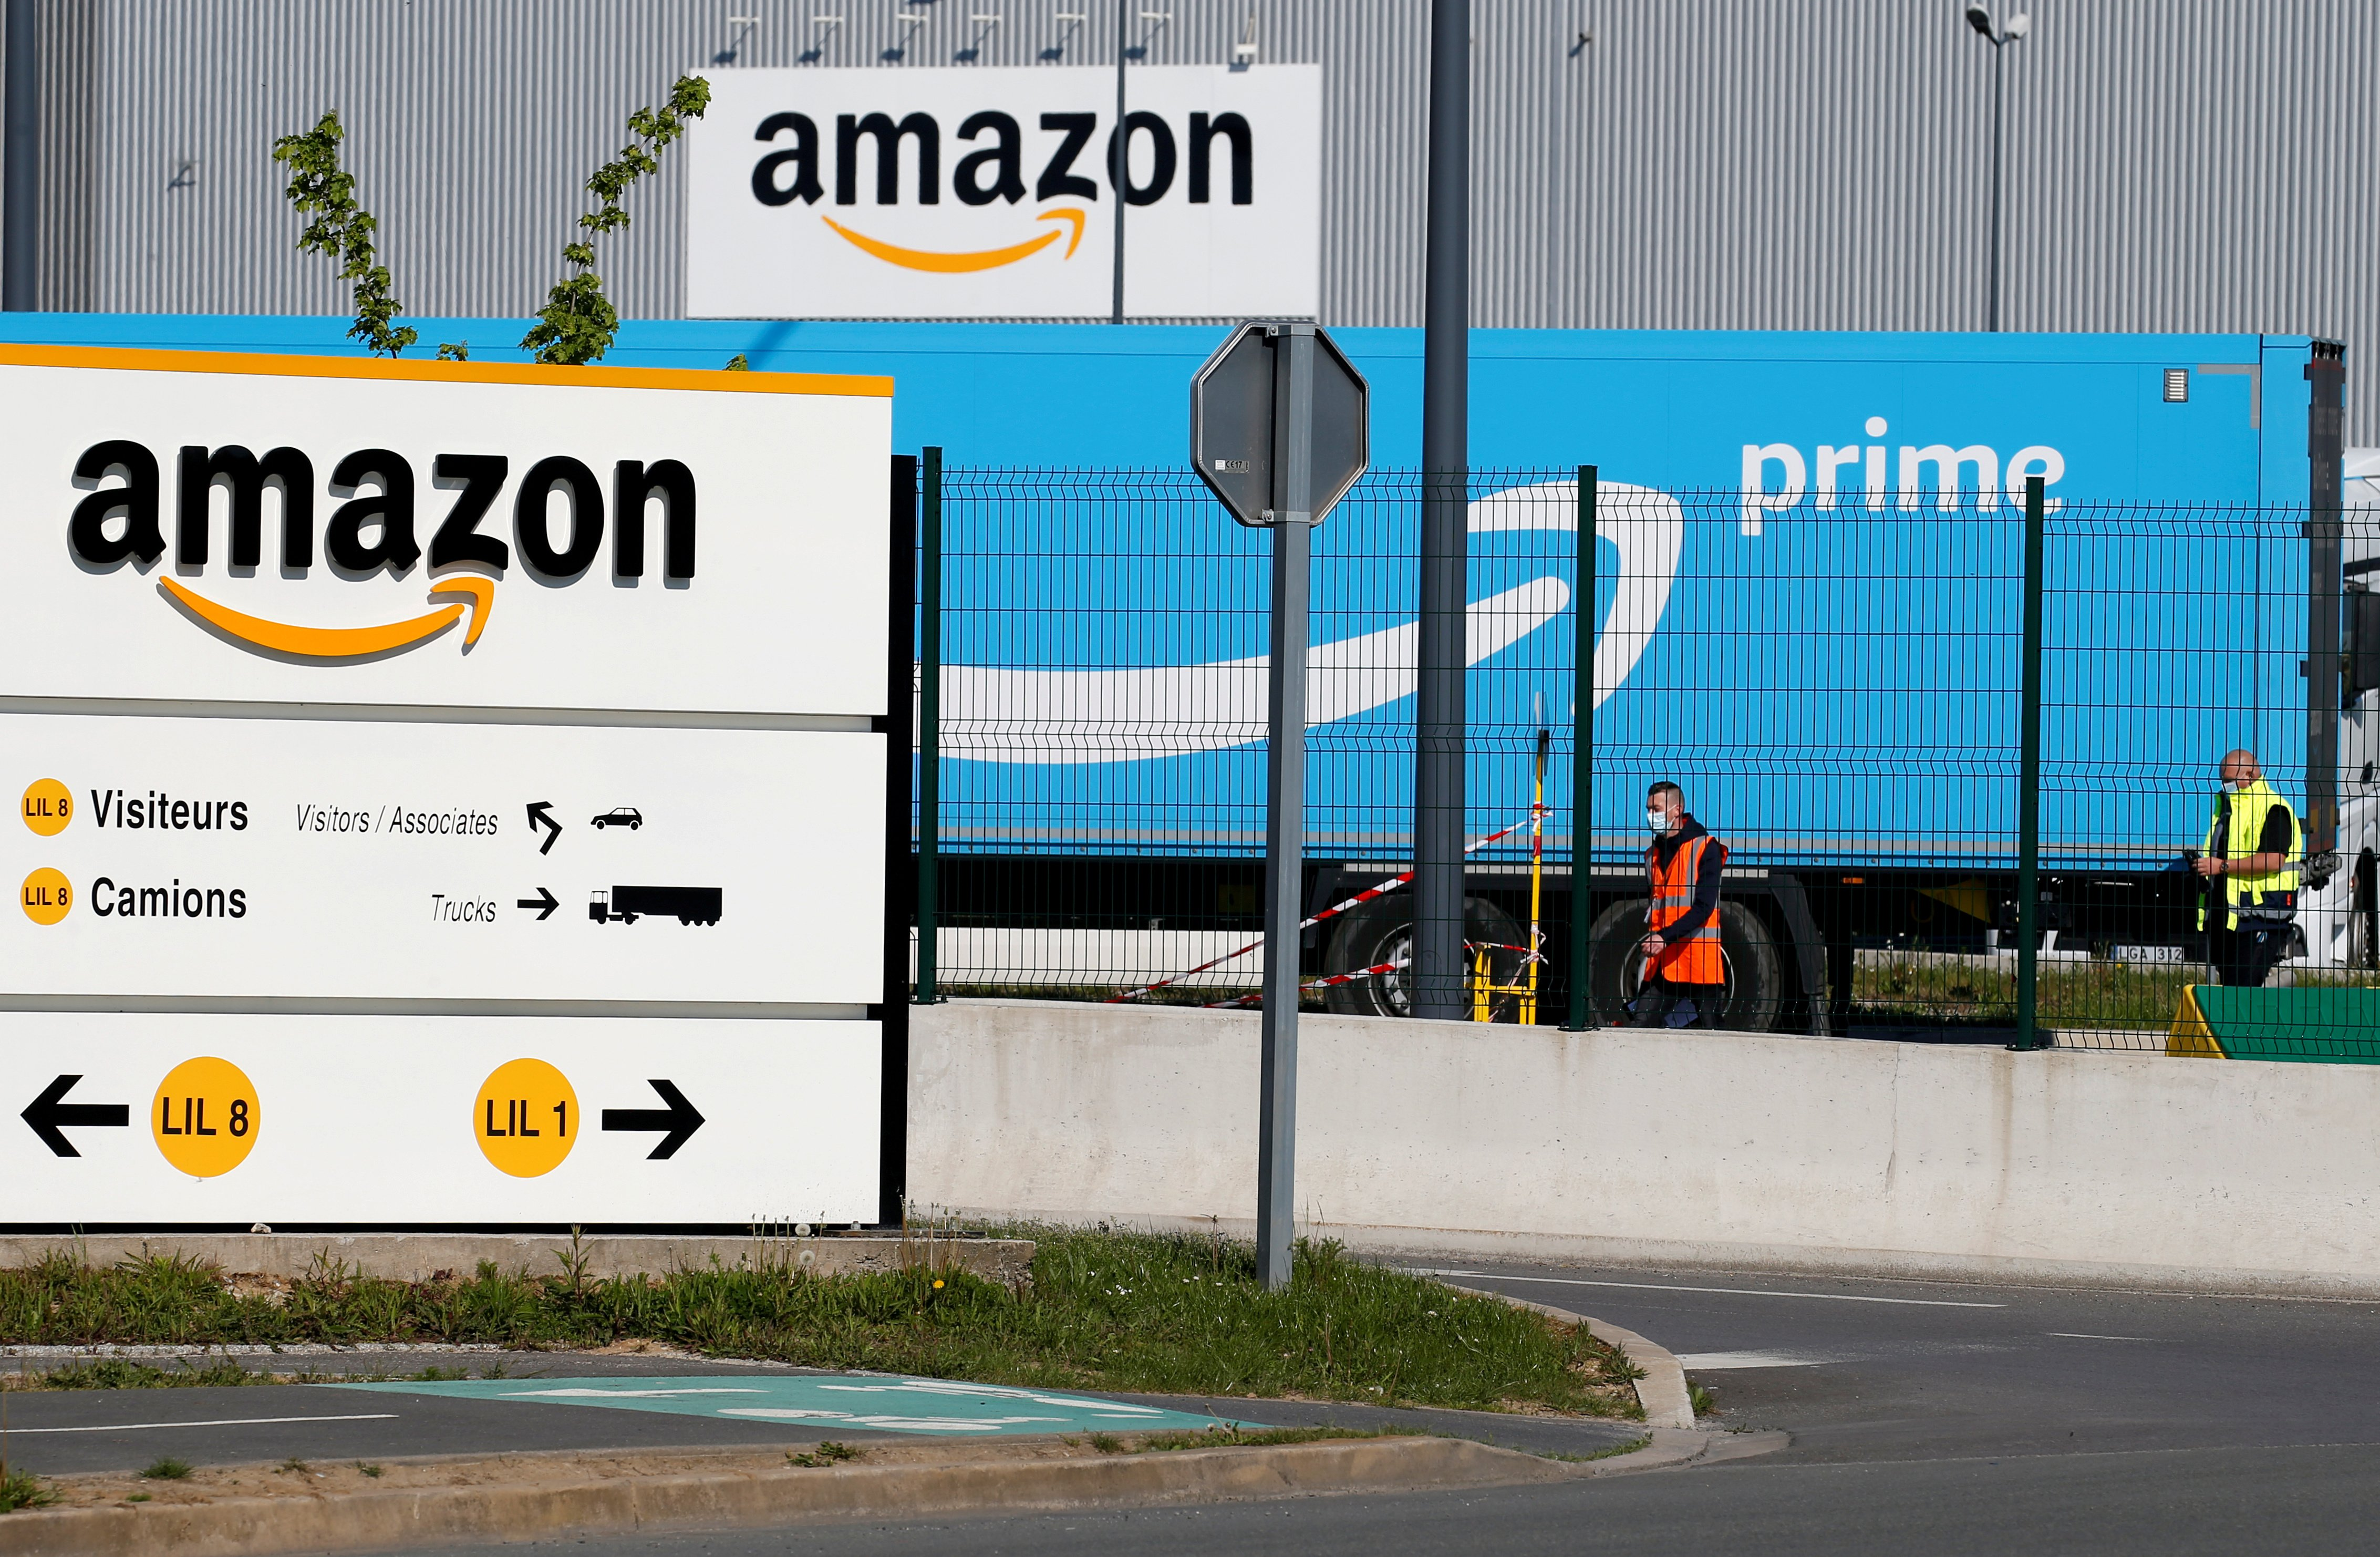 The logo of Amazon is seen at the company logistics center in Lauwin-Planque, northern France, April 22, 2020. REUTERS/Pascal Rossignol/File Photo